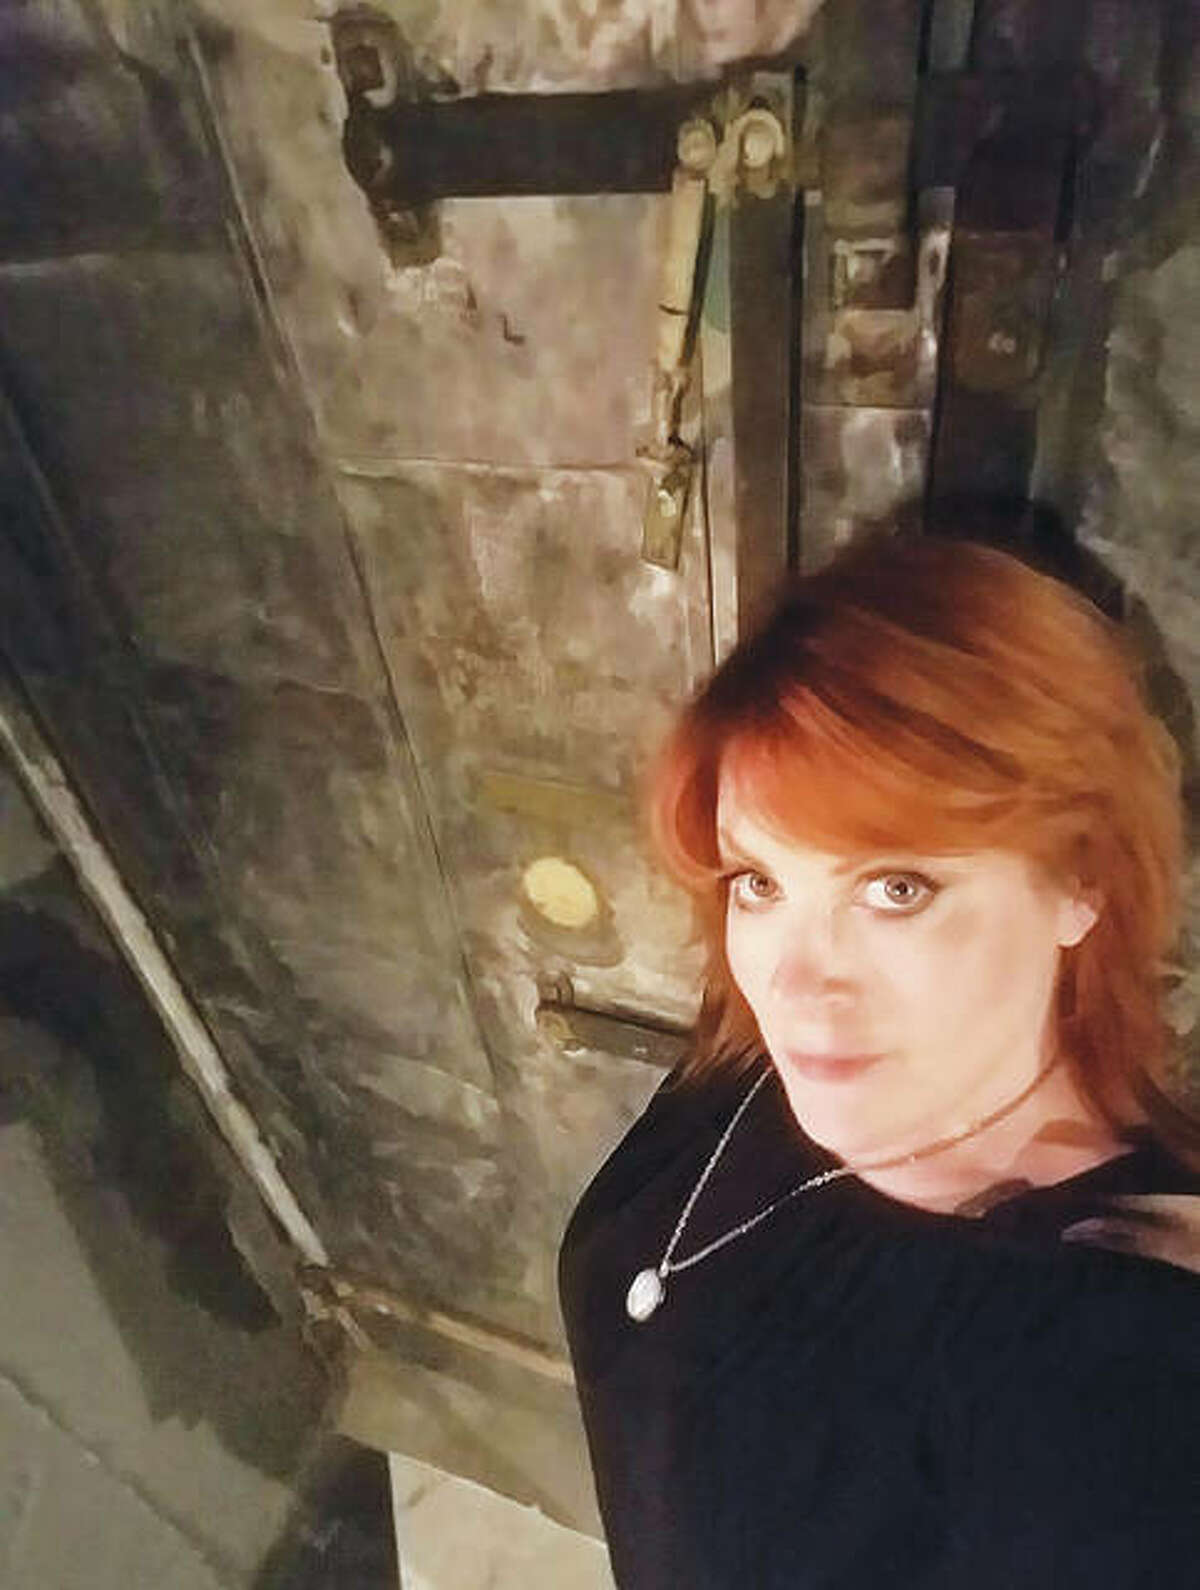 Psychic medium Missy Nichols, who owns Taboo Paranormal, which conducts Milton Schoolhouse tours, is pictured standing in front of Milton's boiler room door. The boiler room is one of the building's areas included on the tours that meet at Maeva's Coffee, inside the building at 1320 Milton Road, Alton.